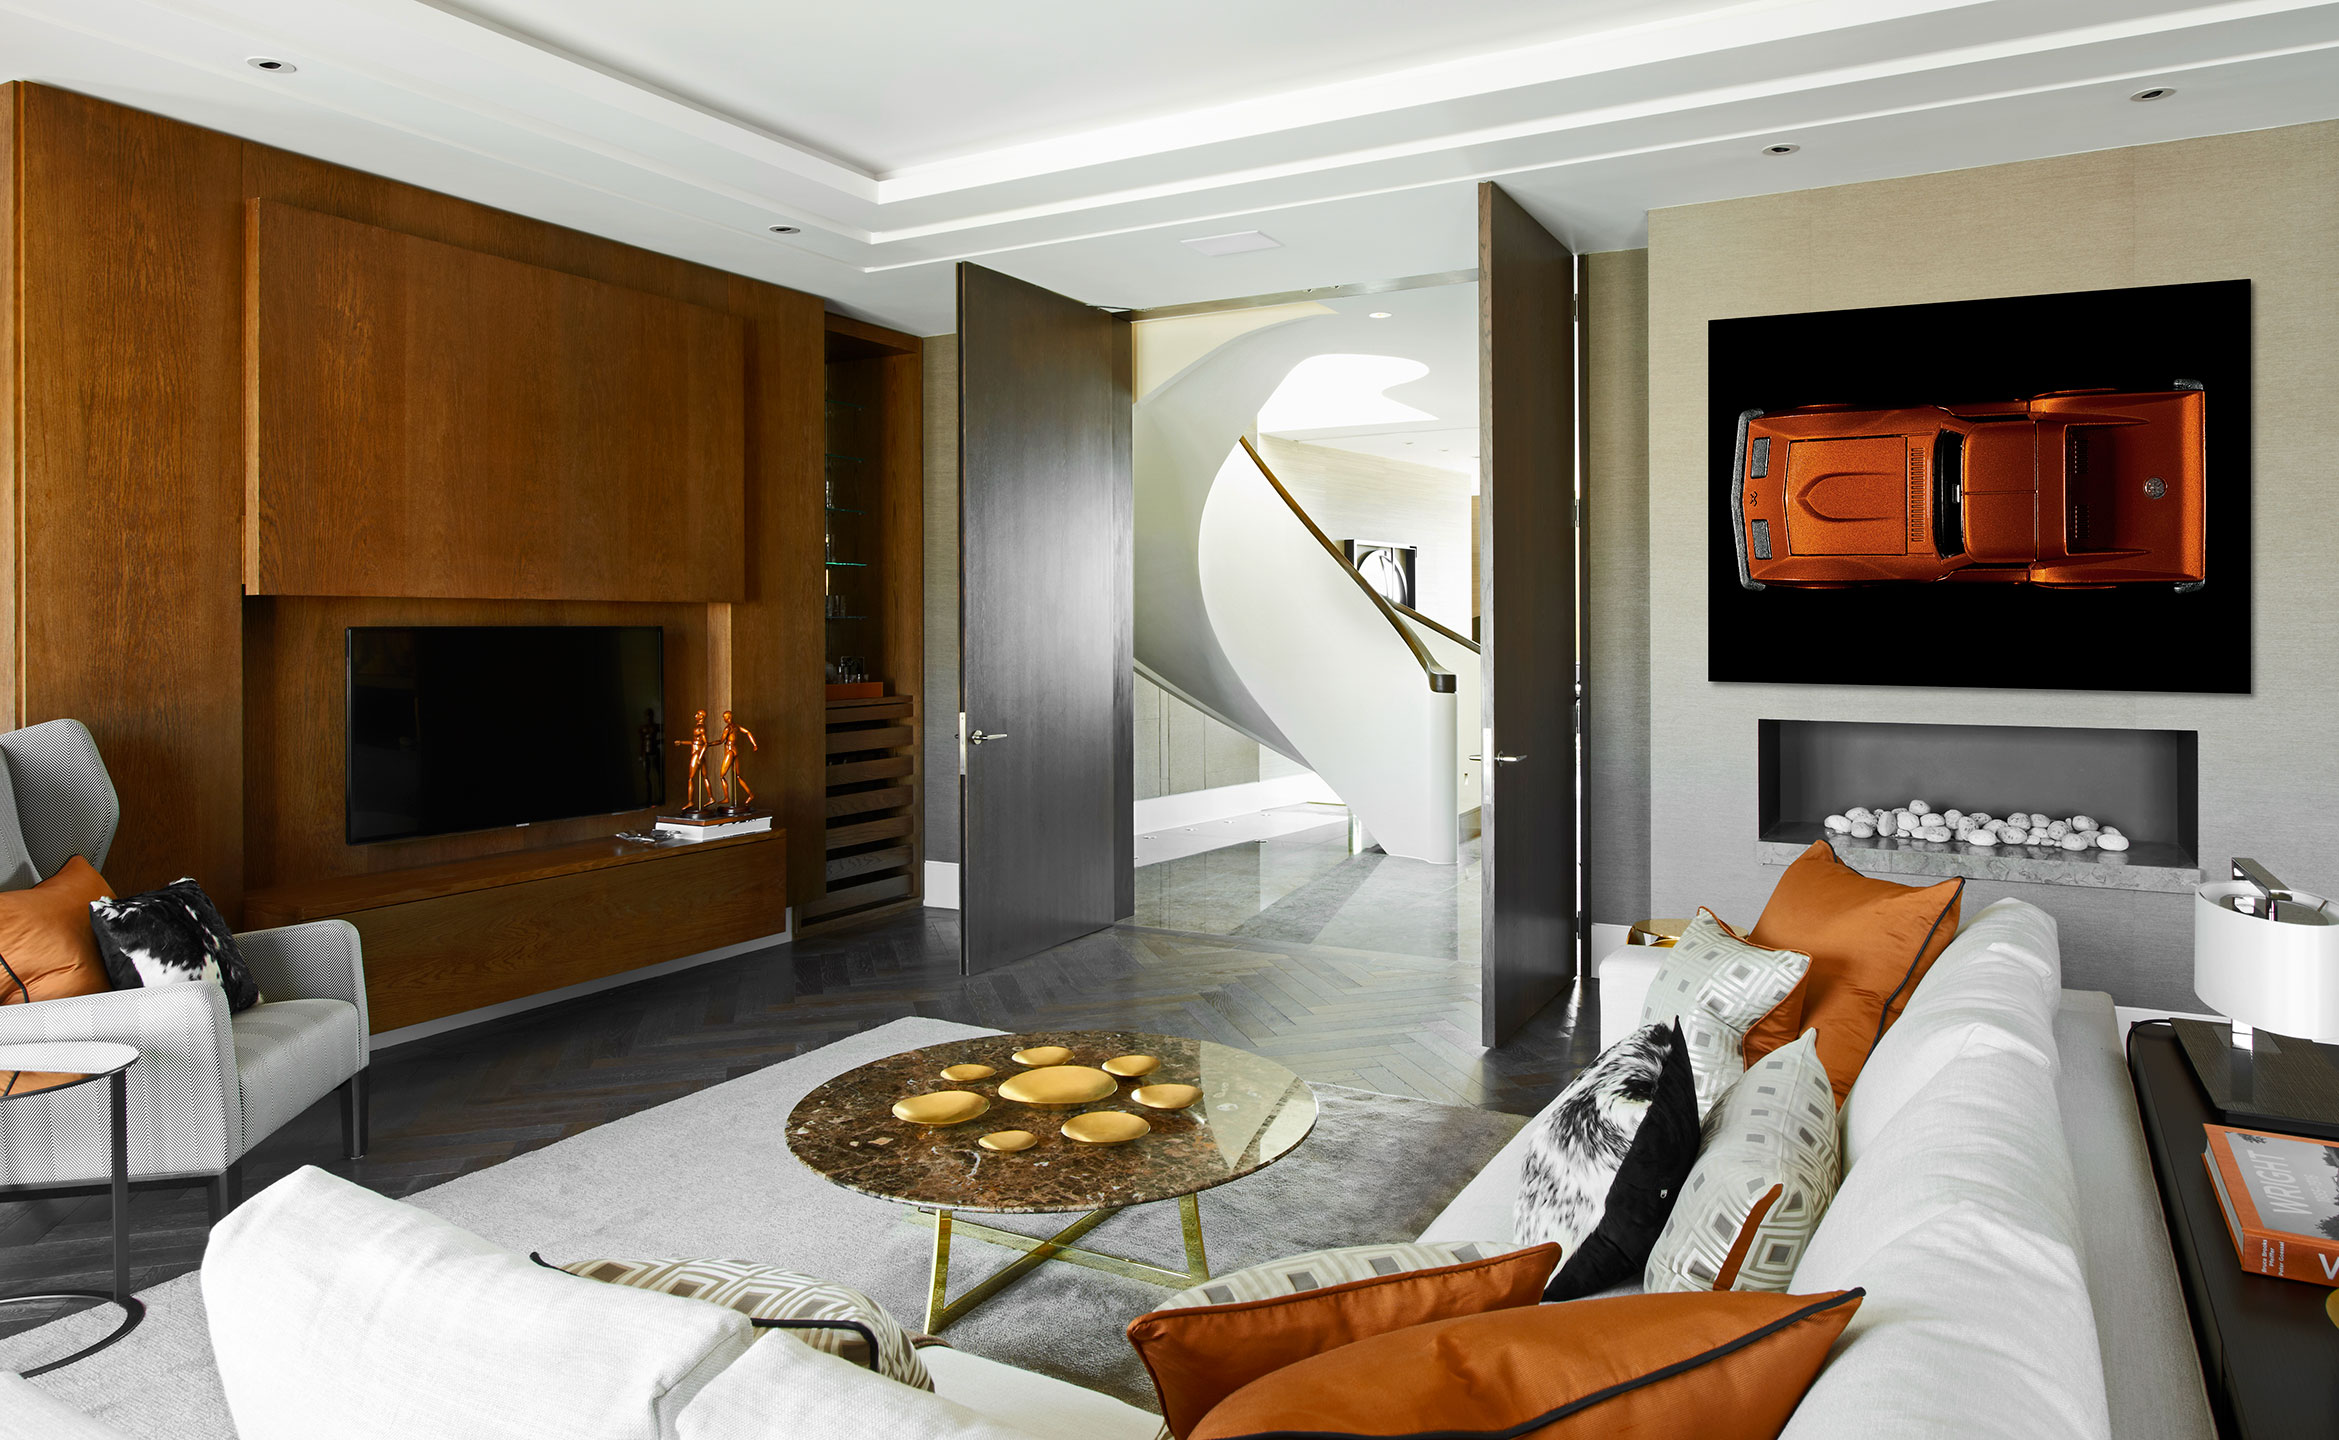 photograph living room high-end trafalgar square london patrick steel